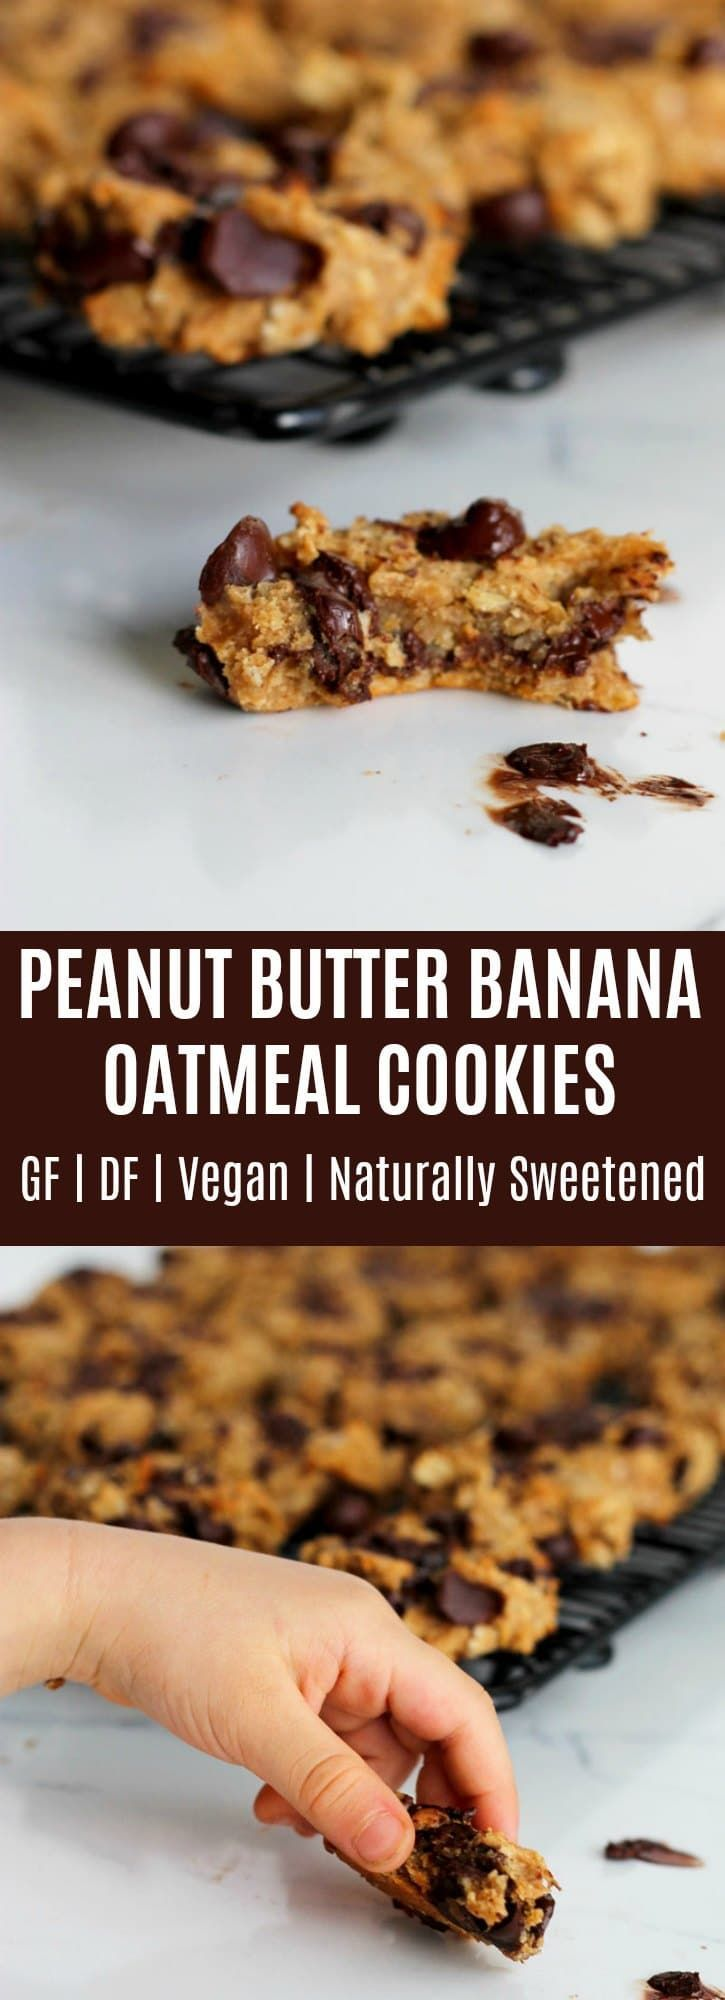 These chewy Peanut Butter Banana Oatmeal Cookies are super perfect for anyone who loves peanut butter and dark chocolate! They are easy to make & naturally sweetened. Gluten-free & dairy-free as well!